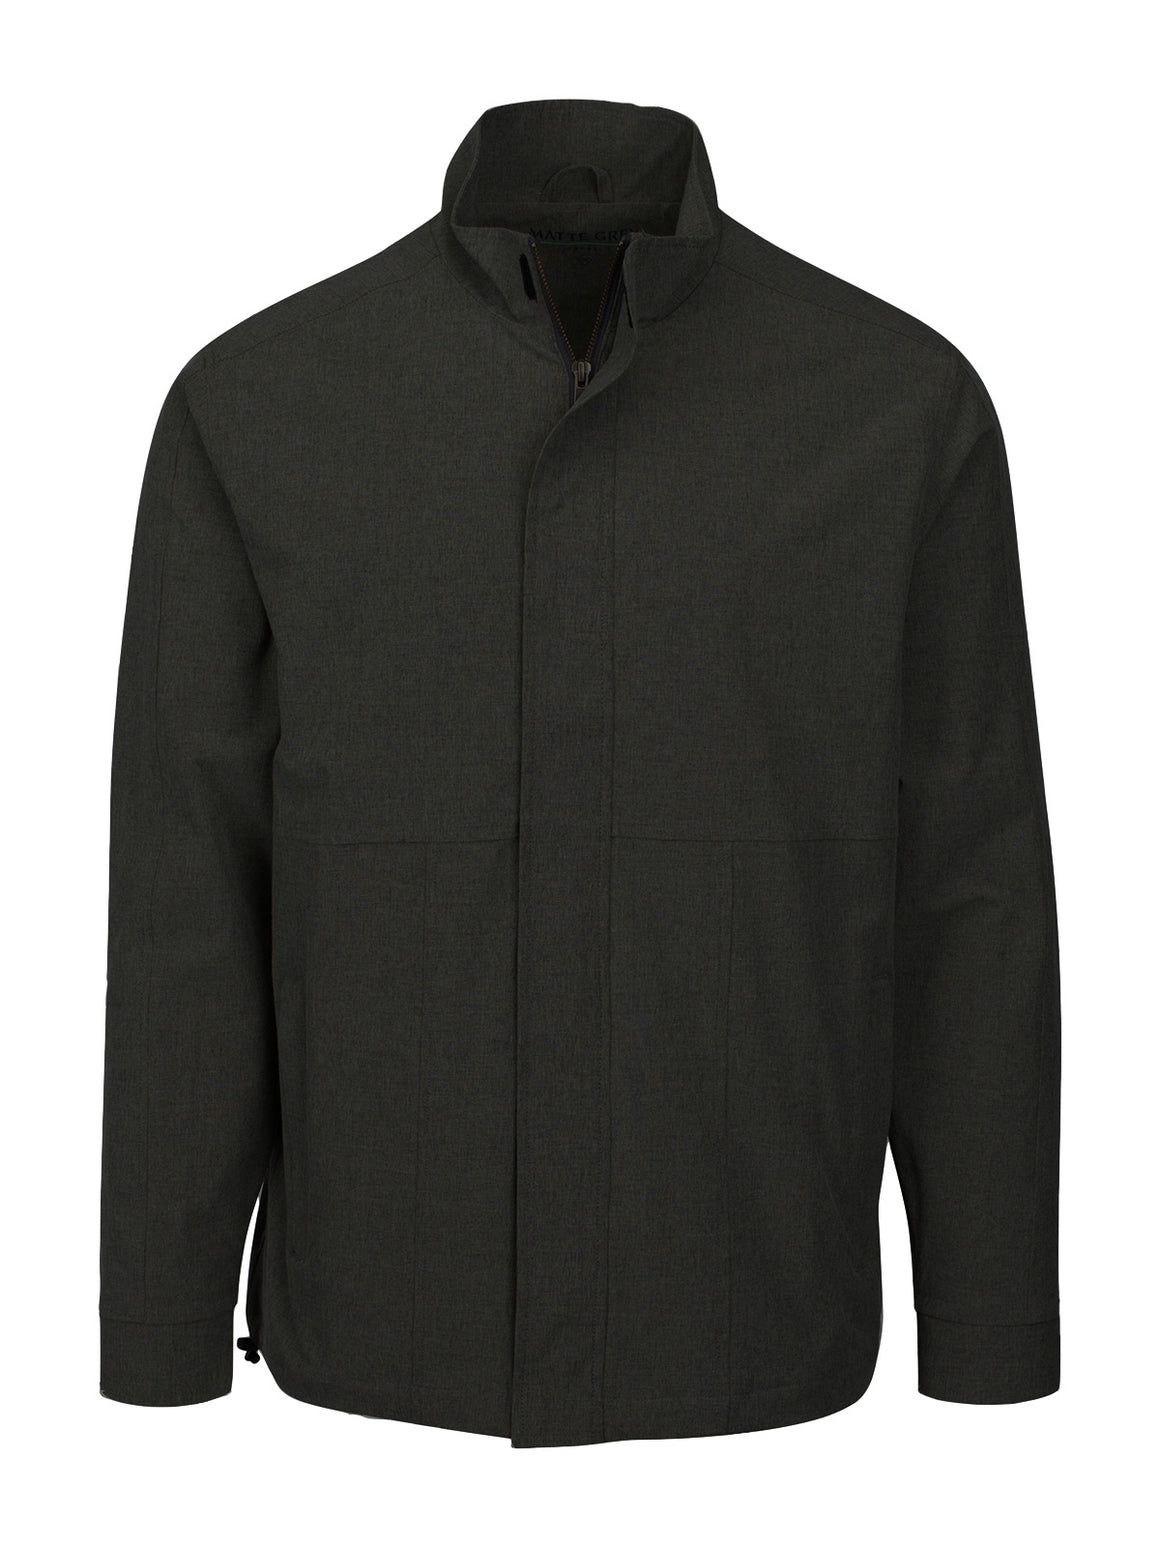 Traveler Jacket - Black Heather